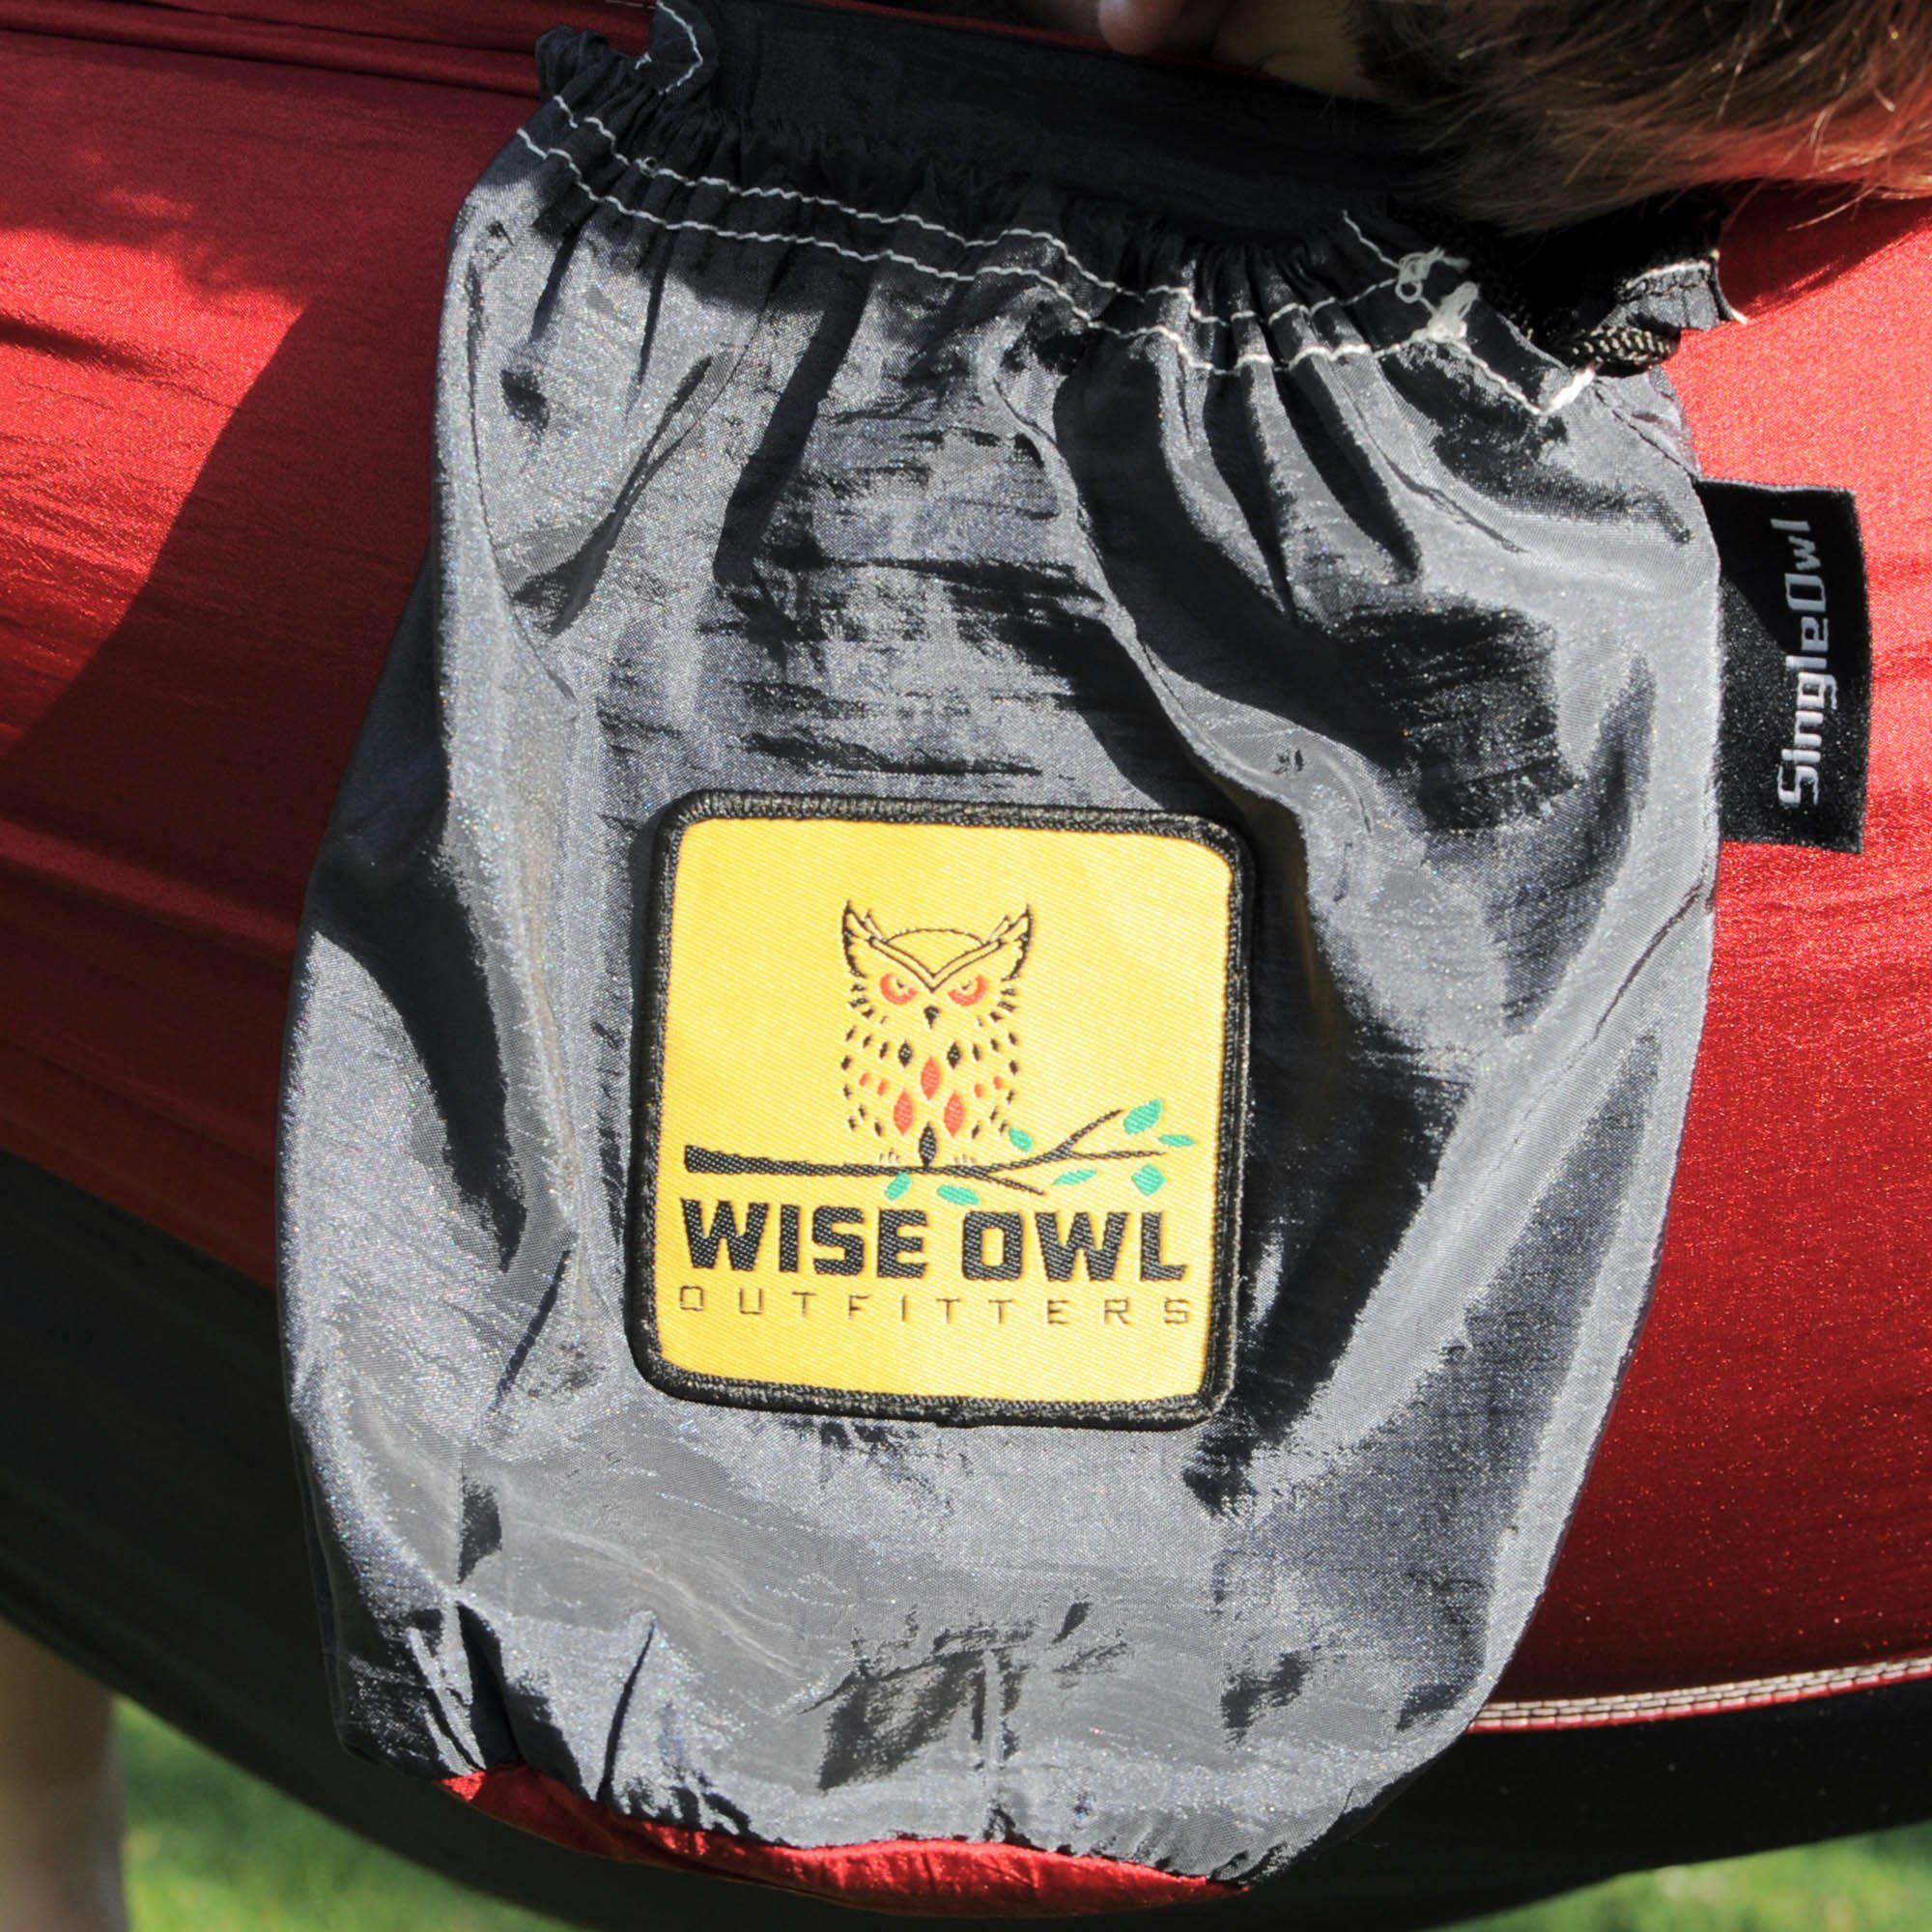 Wise Owl Outfitters Hammock For Camping Single And Double Hammocks Gear For The Outdoors Backpacking Survival Or T Backpacking Tent Hammock Camping Tree Straps